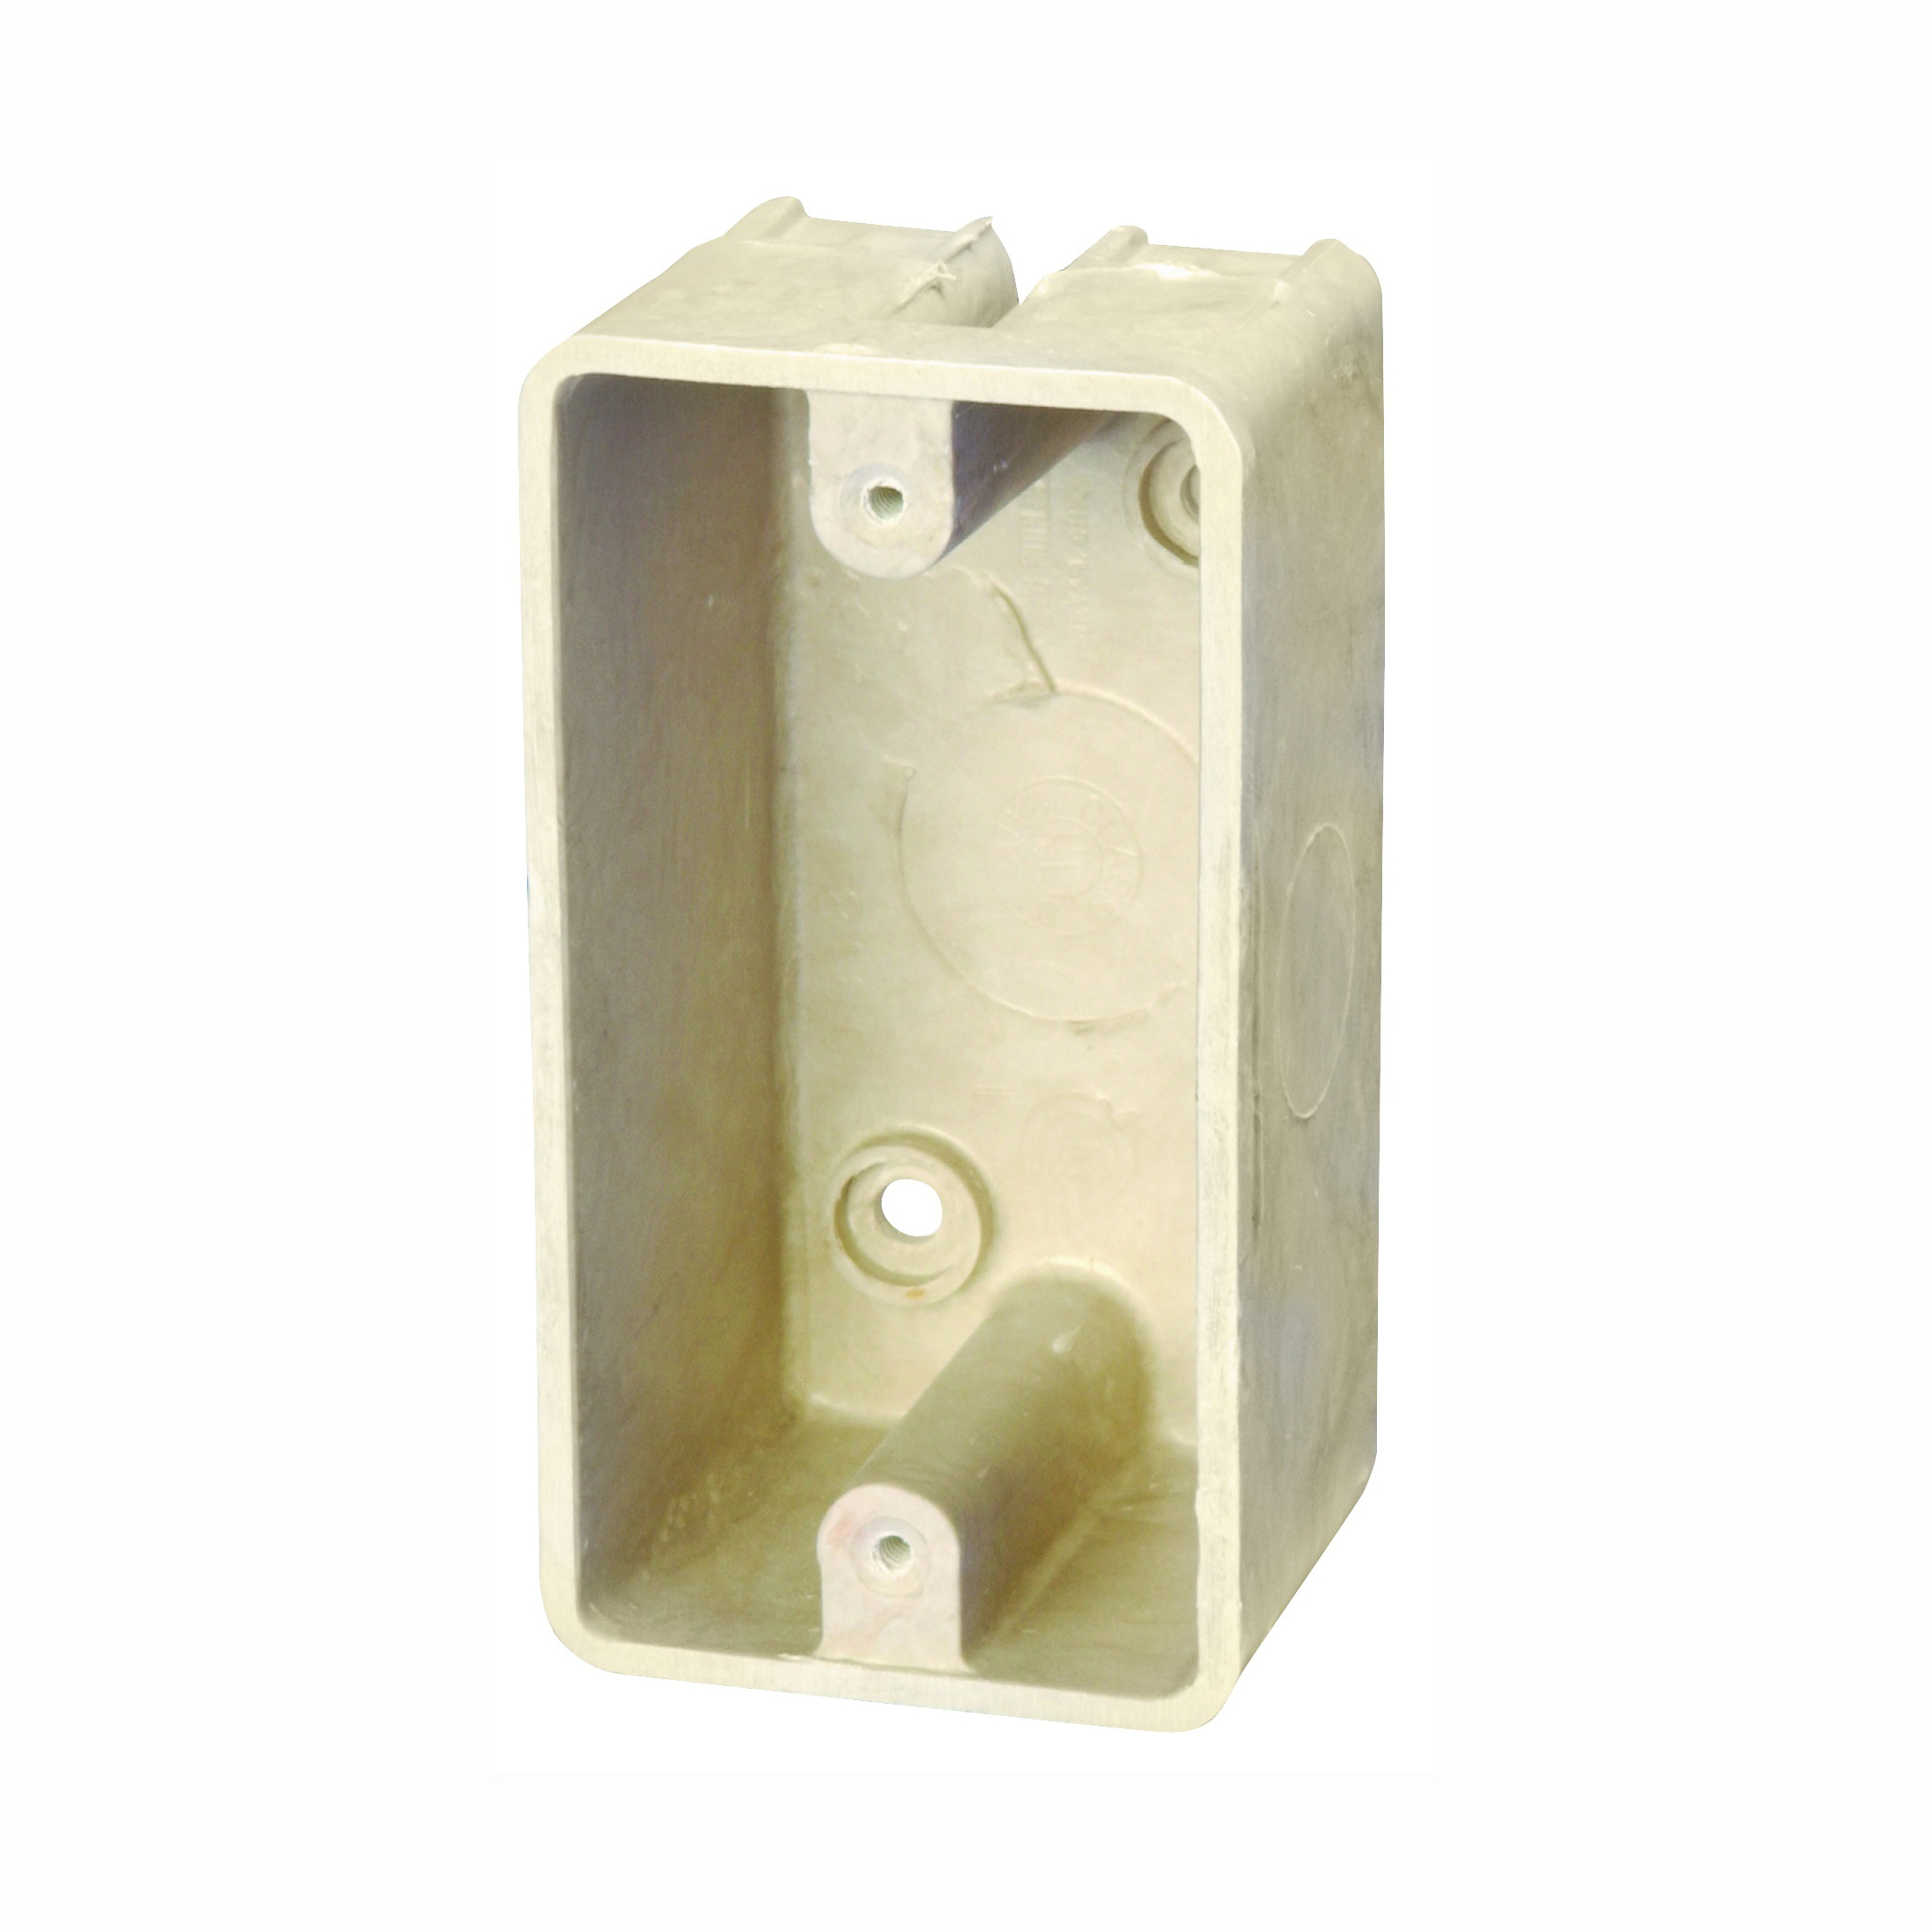 Picture of Allied Moulded FiberglassBOX 9318 Electrical Box, 1-Gang, 4-Knockout, Thermoset Fiberglass, Beige/Tan